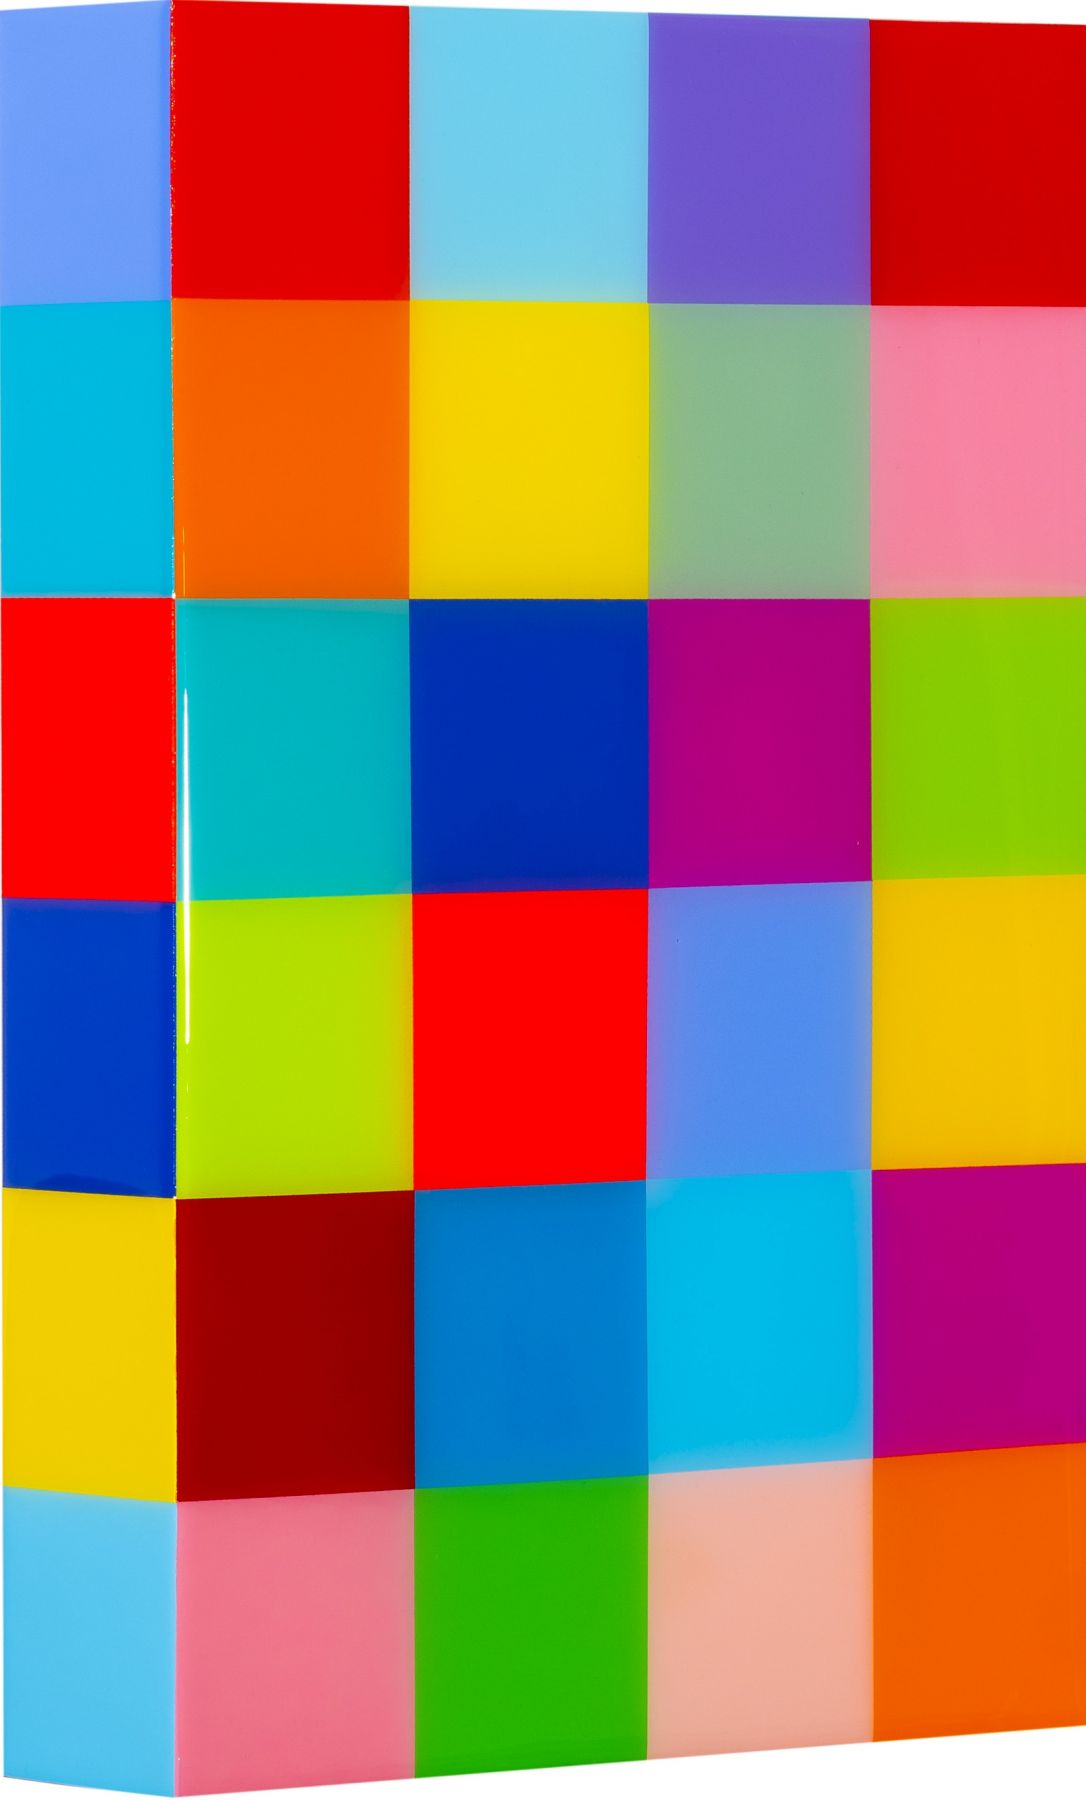 Heidi Spector, Deep In The Heart of Me II, 2019, Liquitex with resin on Birch panel,18 x 12 x 3 inches, Signed, titled and dated on the verso, Vertical panel with bright and colorful cubes set in a glass-like surface, Heidi Spector creates geometric minimalist art inspired by musical rhythms that are composed of repetitive cubes in candy-like colors that vibrate.